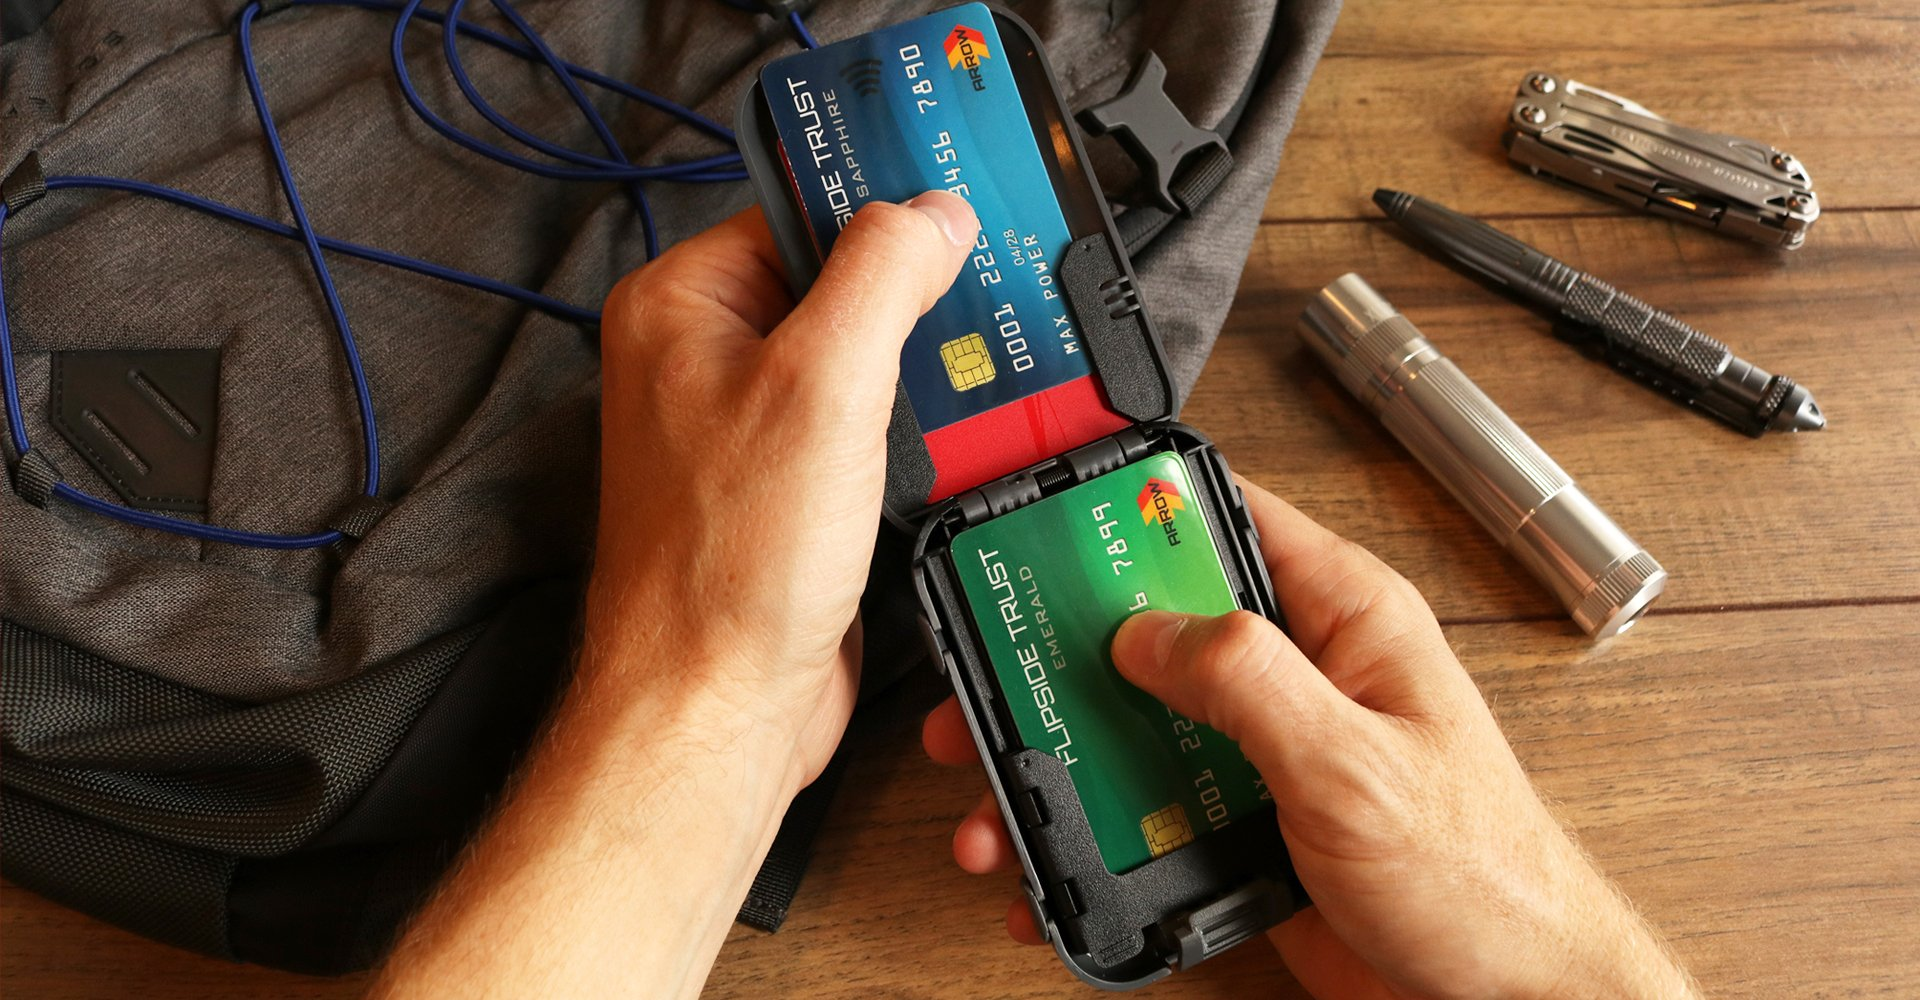 rfid secure wallet that locks shut